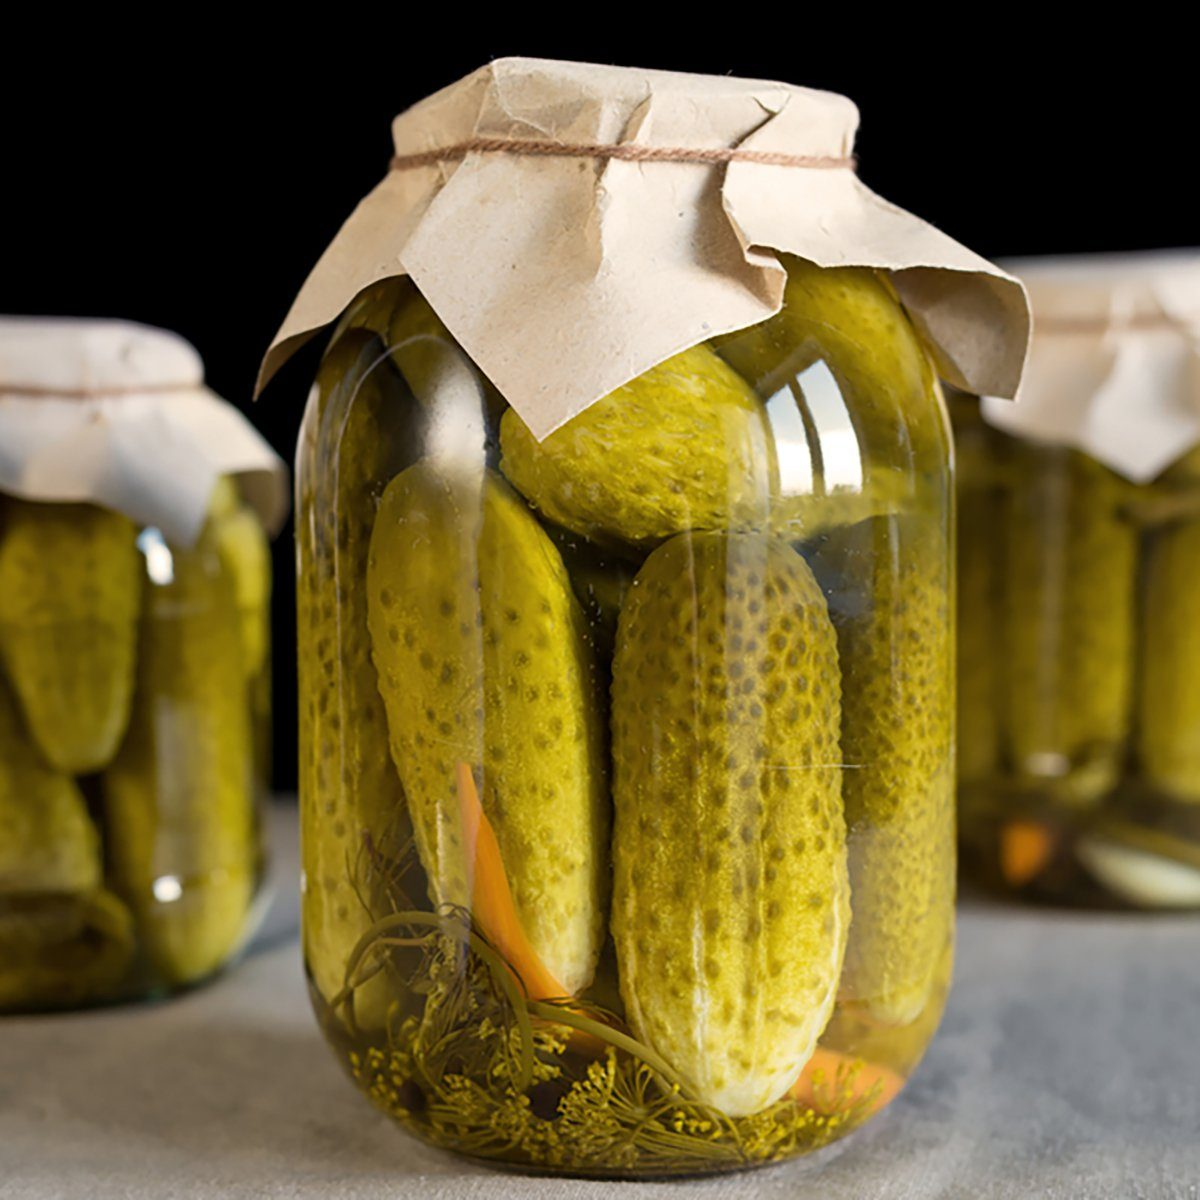 Four glass jars with pickled cucumbers